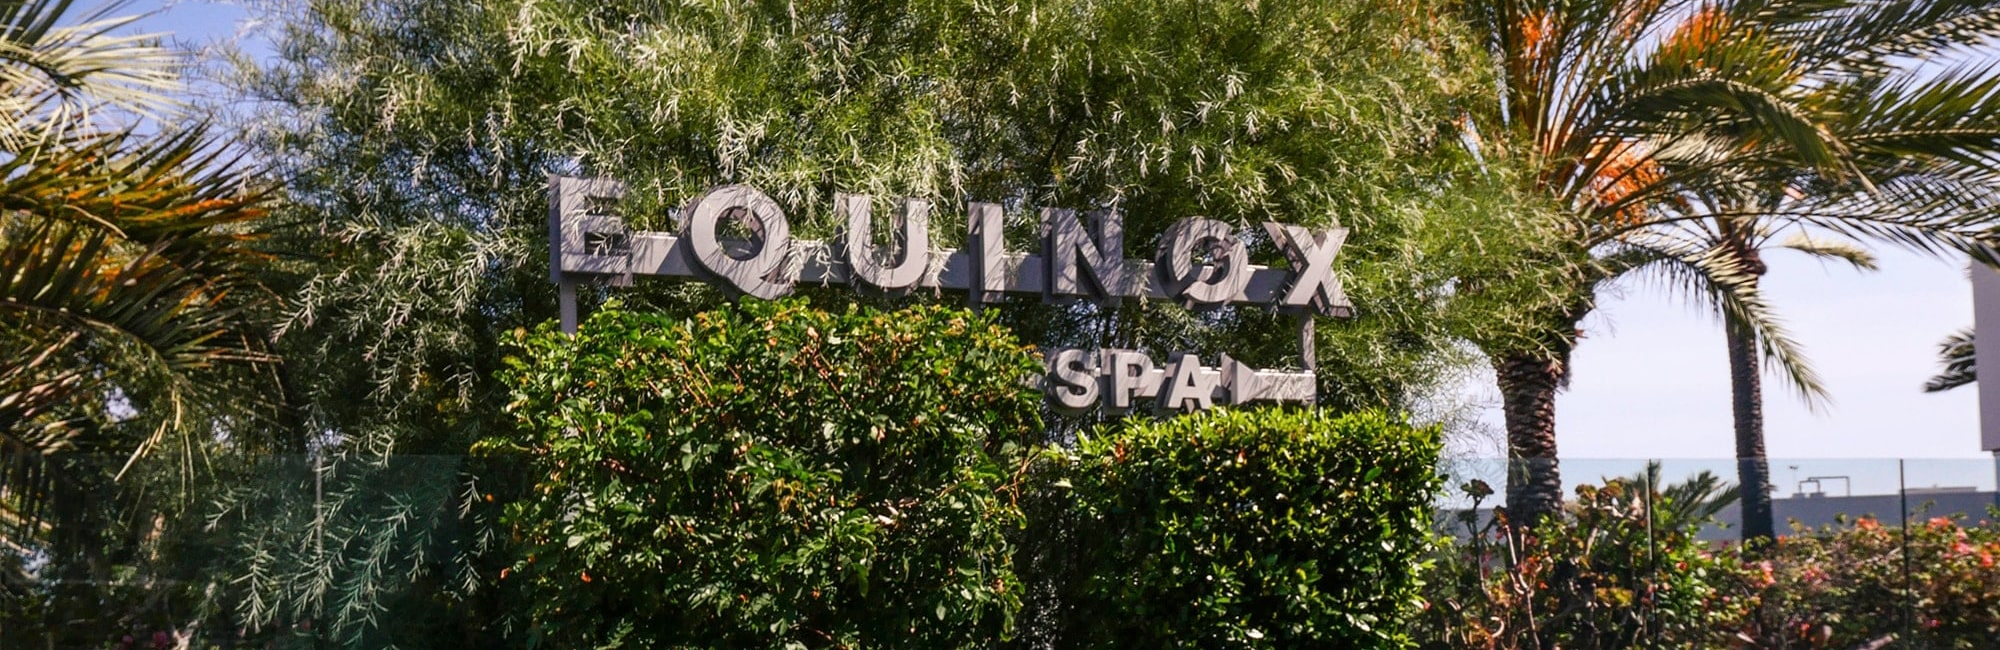 Equinox Spa Sign in Tree